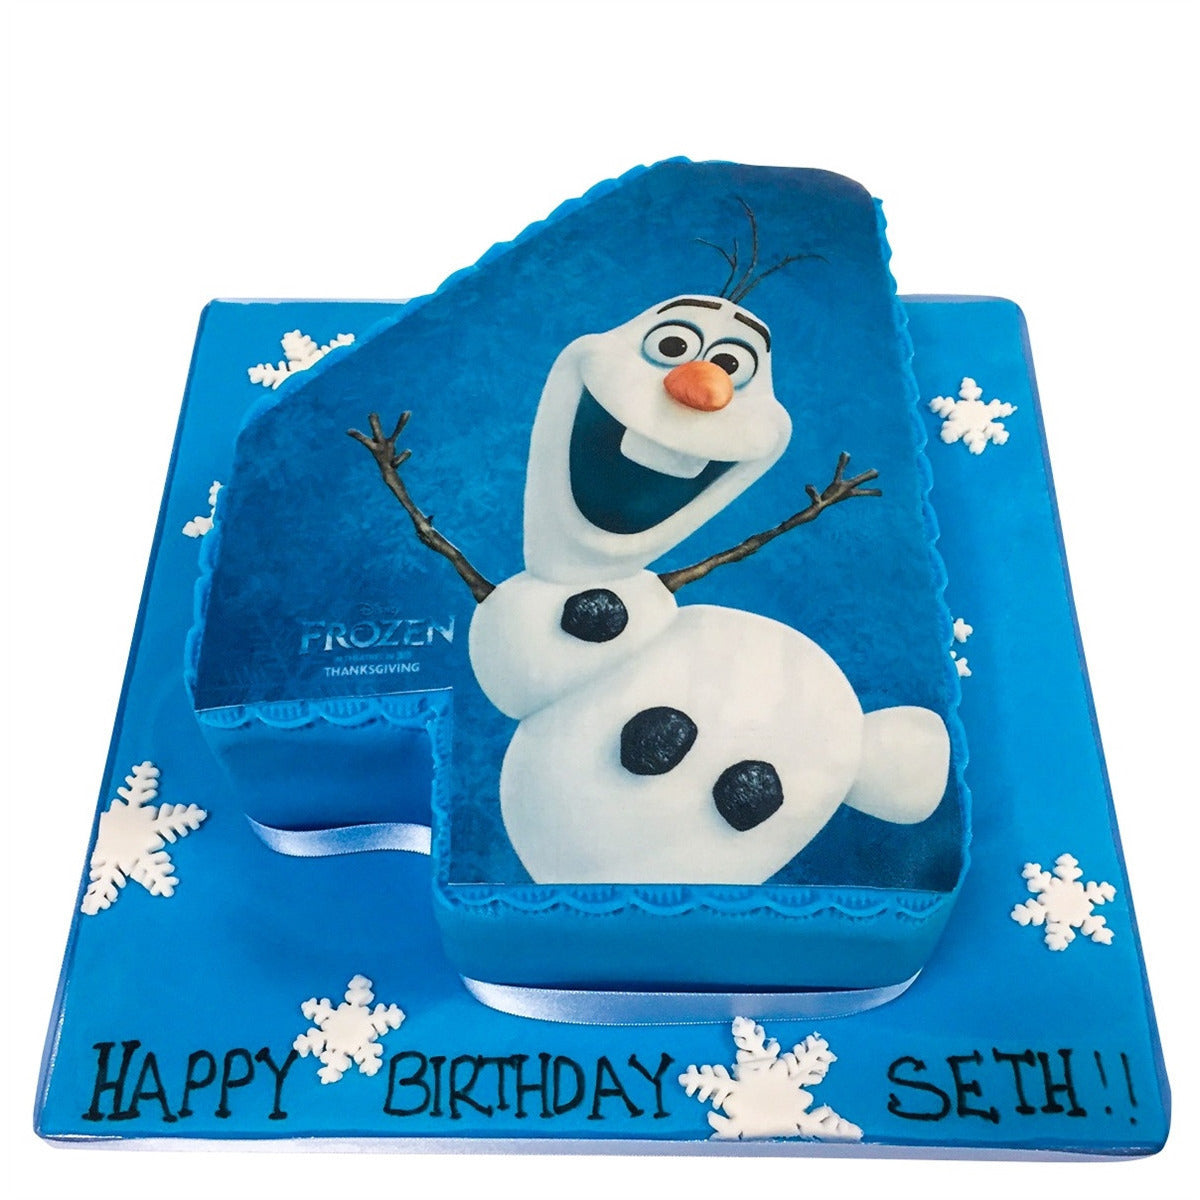 Pleasing Olaf Frozen Birthday Cake Buy Online Free Uk Delivery New Cakes Personalised Birthday Cards Sponlily Jamesorg